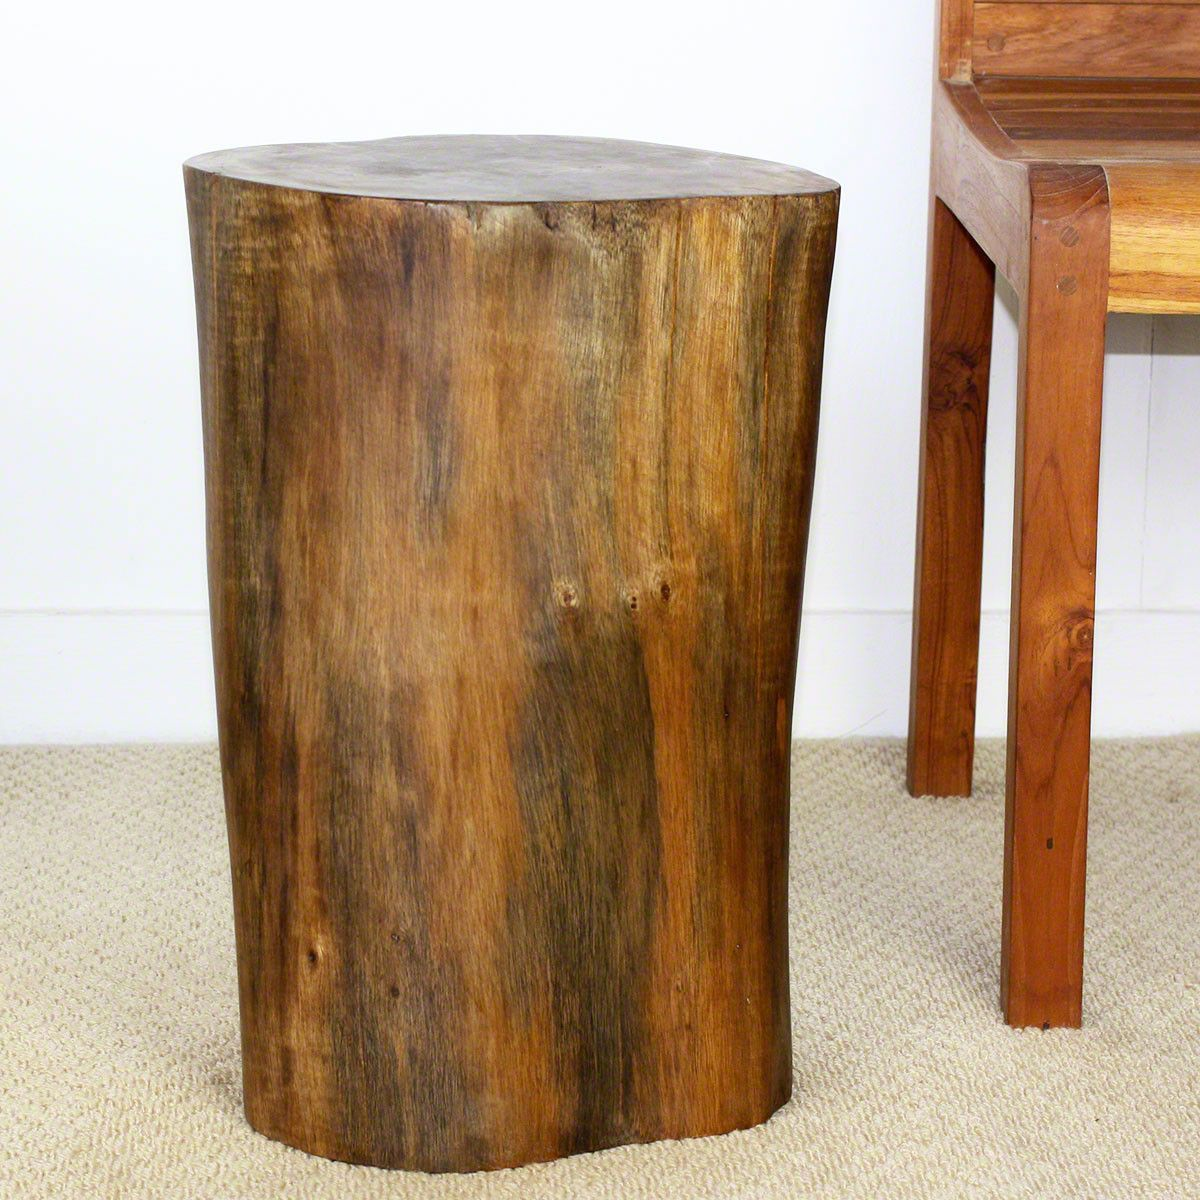 50++ Wood stump coffee table outdoor ideas in 2021